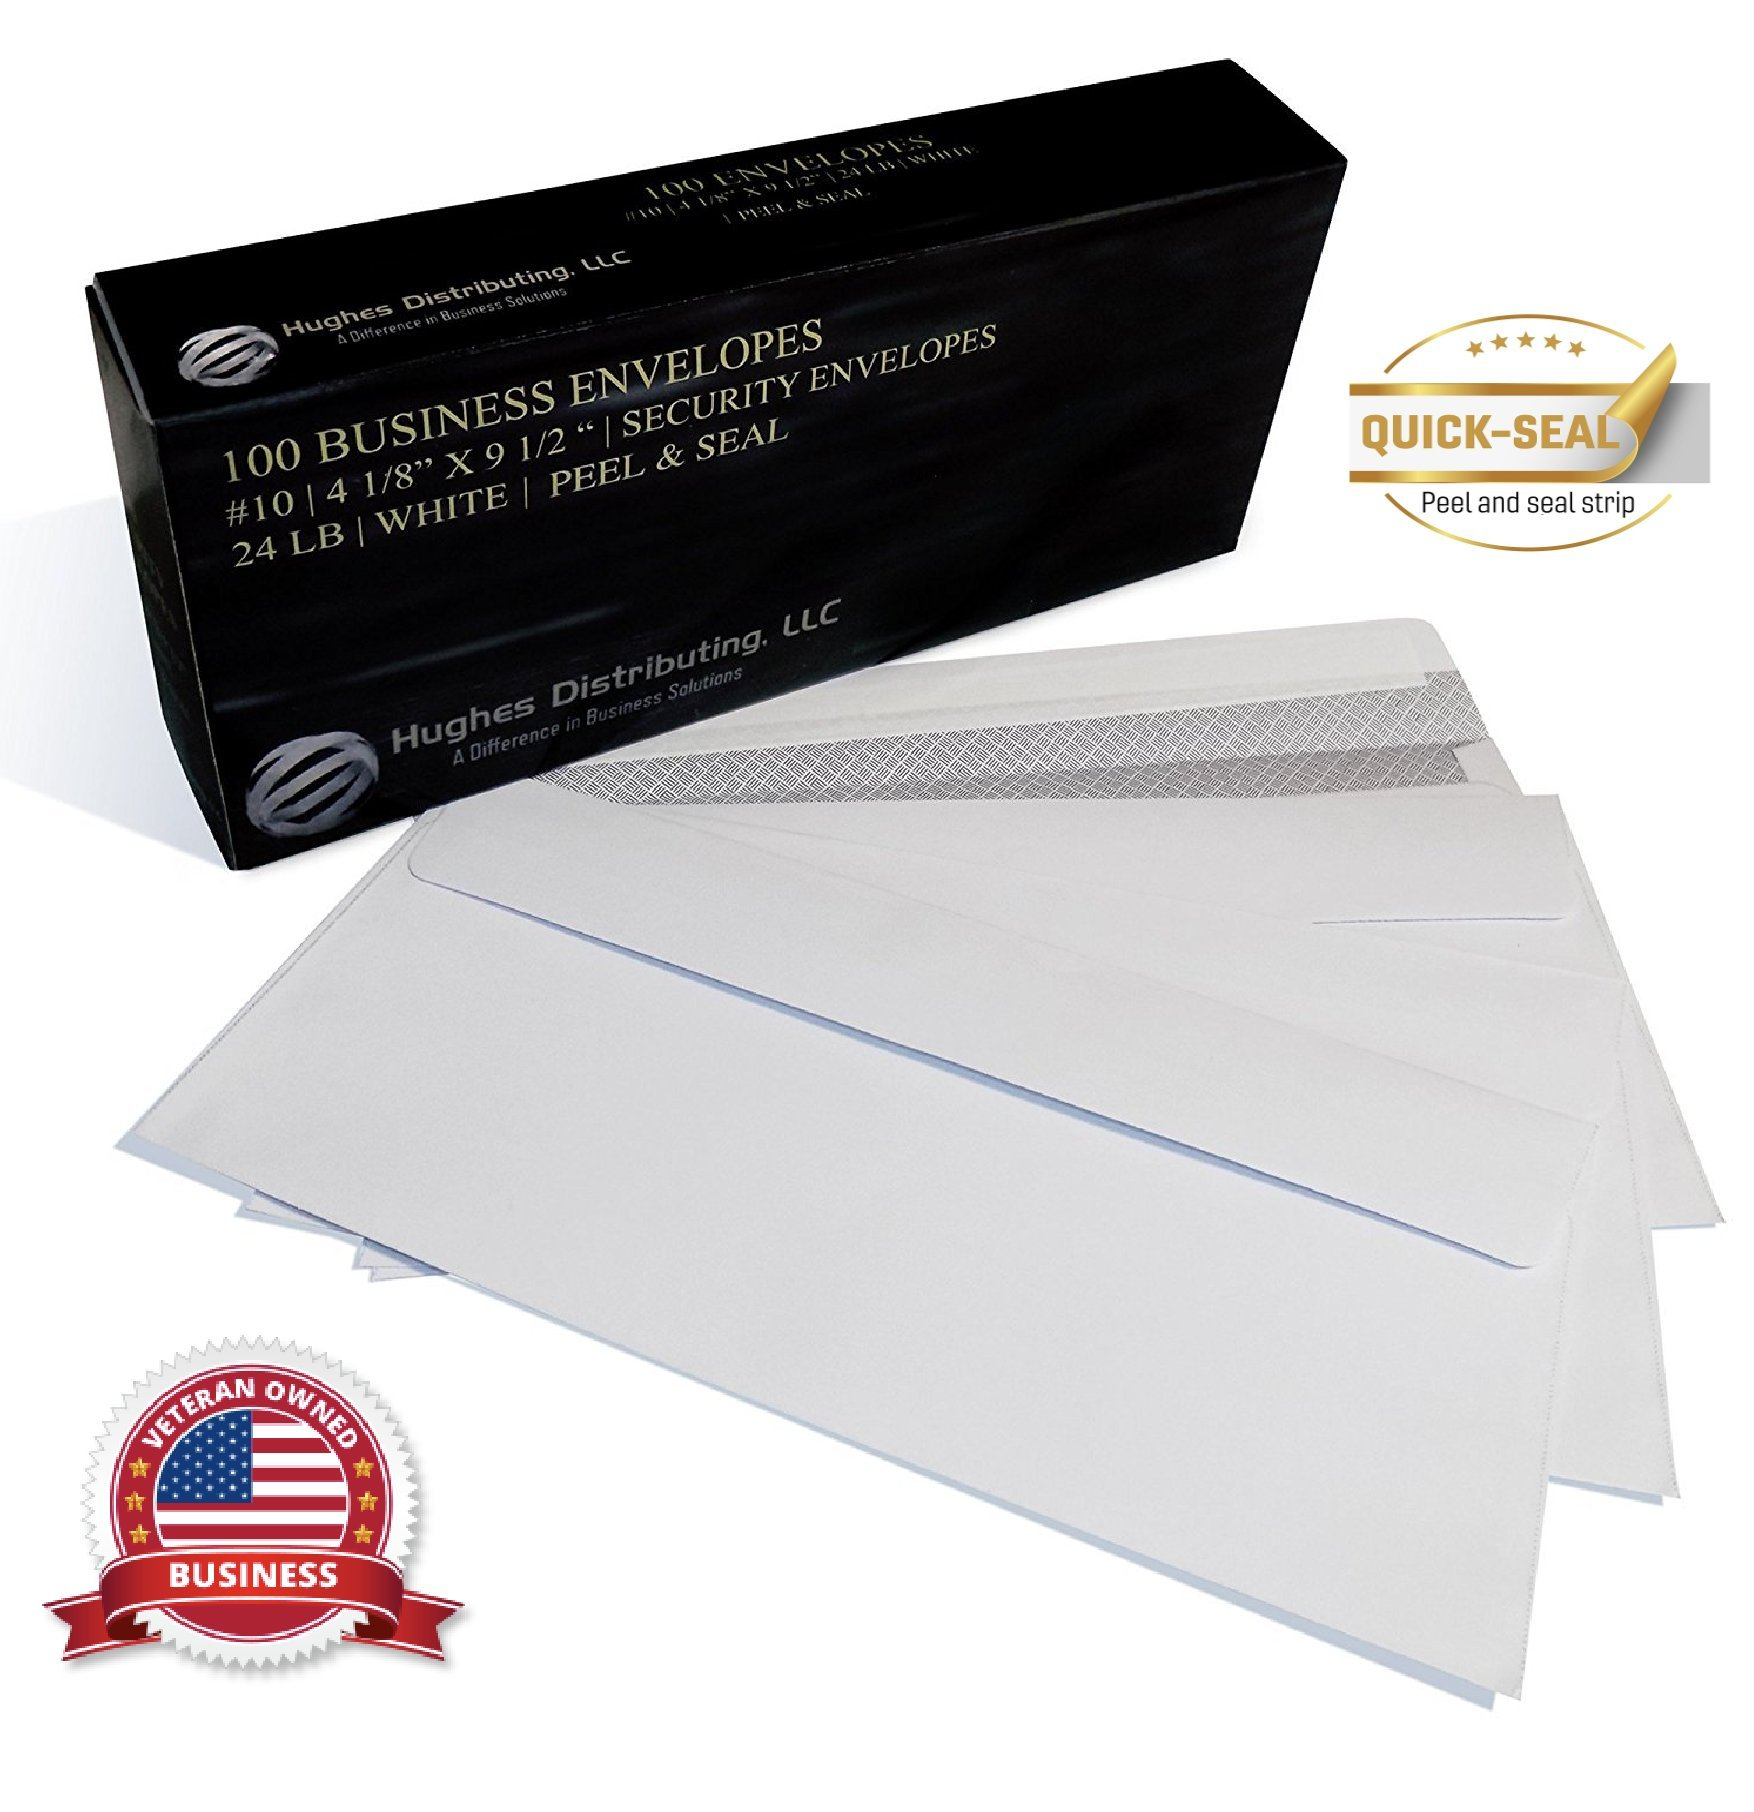 NO #10 Security SELF SEAL Business Envelope No Window Premium Black Security Tint Ideal for Home Office Secure Mailing PEEL & SEAL Closure - 4-1/8 x 9-1/2 Inches - White - 24 LB - 100 Per Box